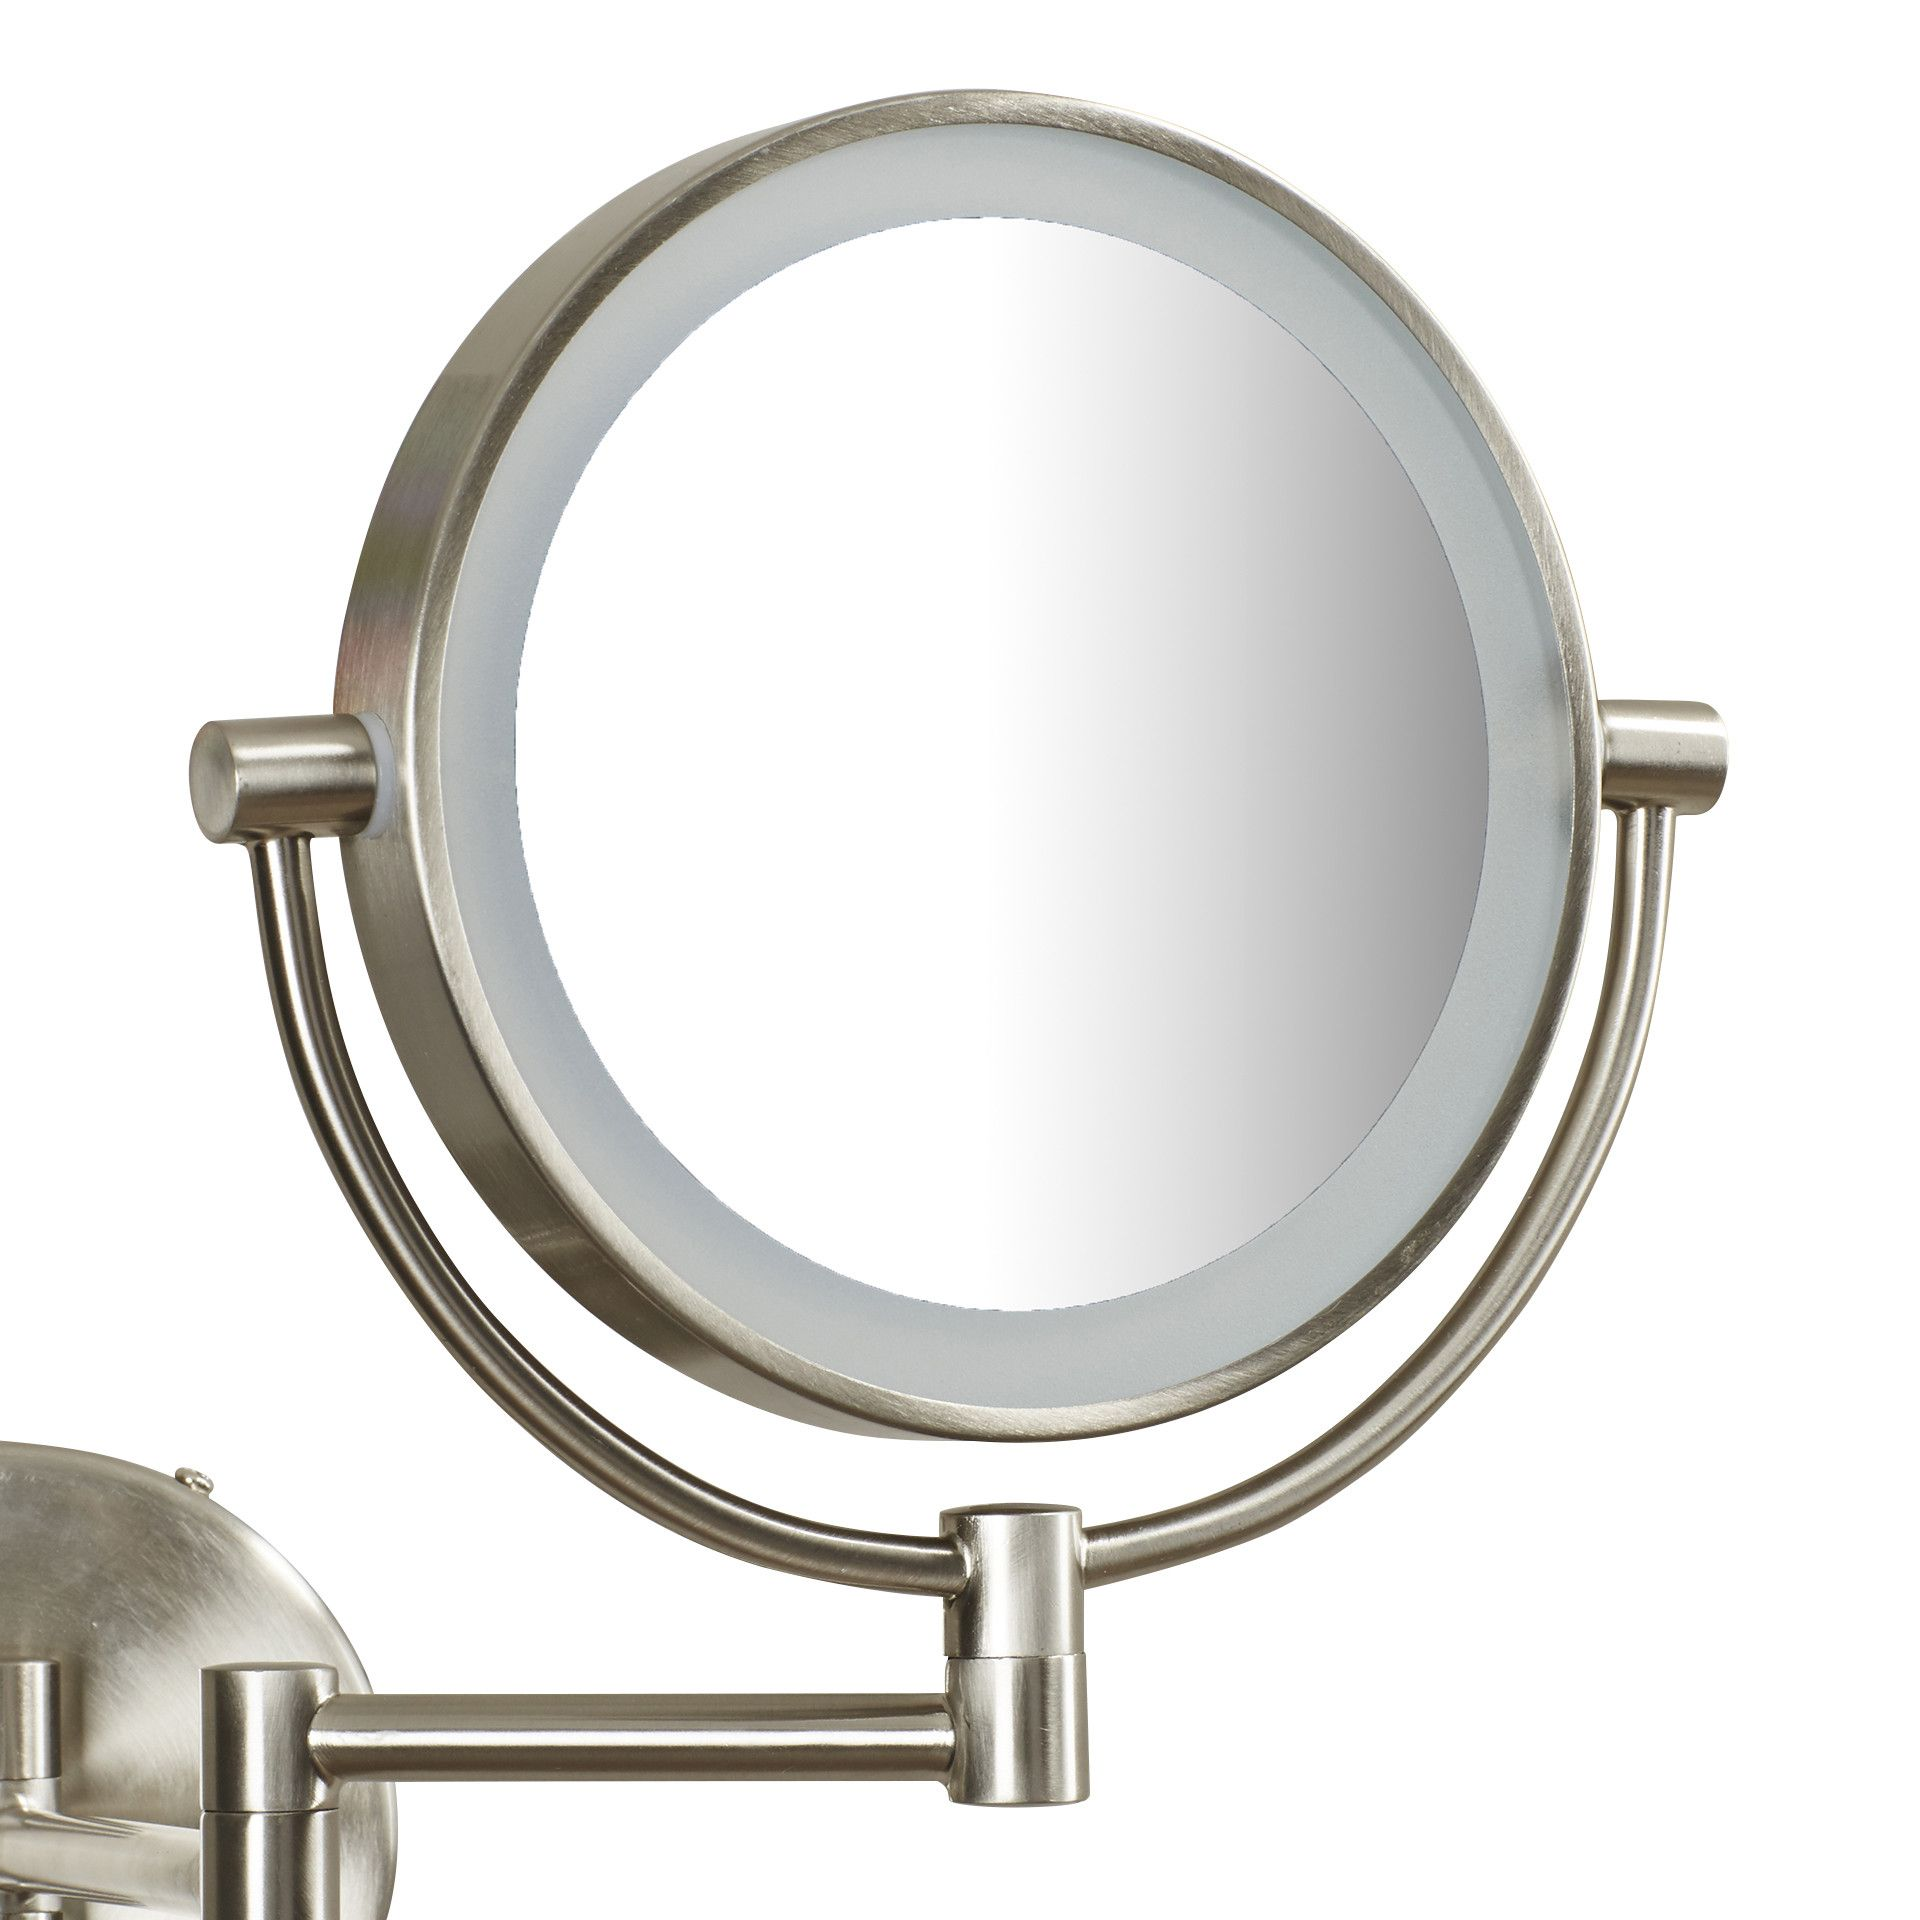 Howell Lighted Wall Mount Mirror Wall Mounted Mirror Mirror Wall Mount